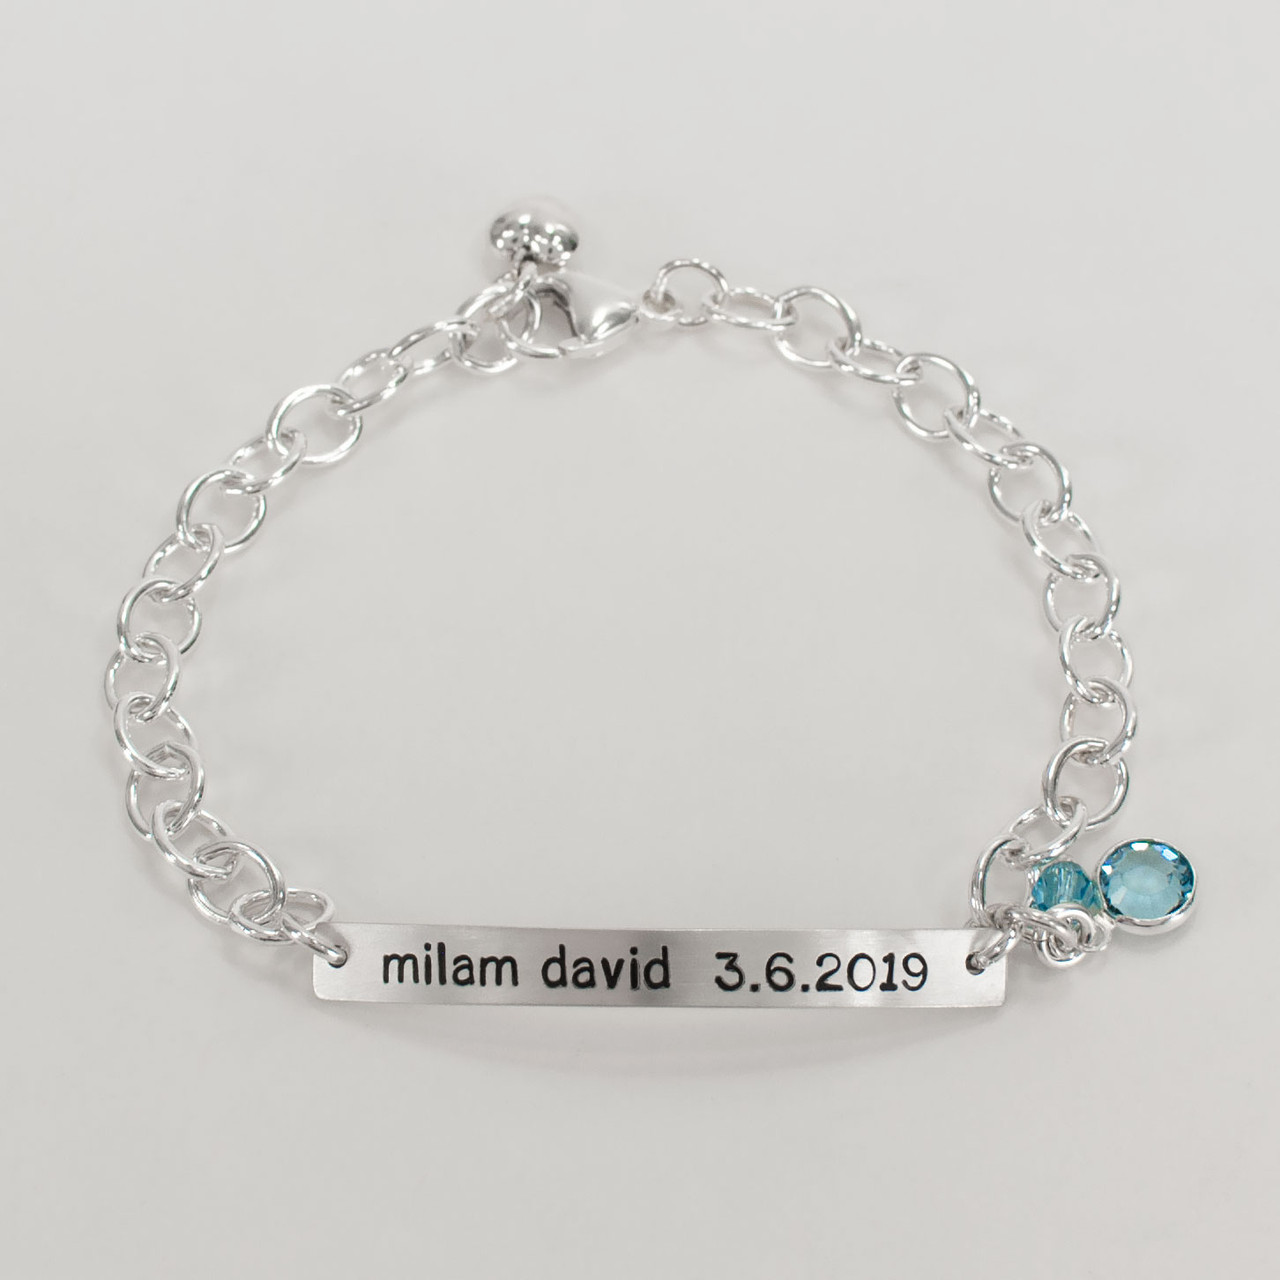 Hand stamped ID Bracelet made from sterling silver, shown with birthstone from the top